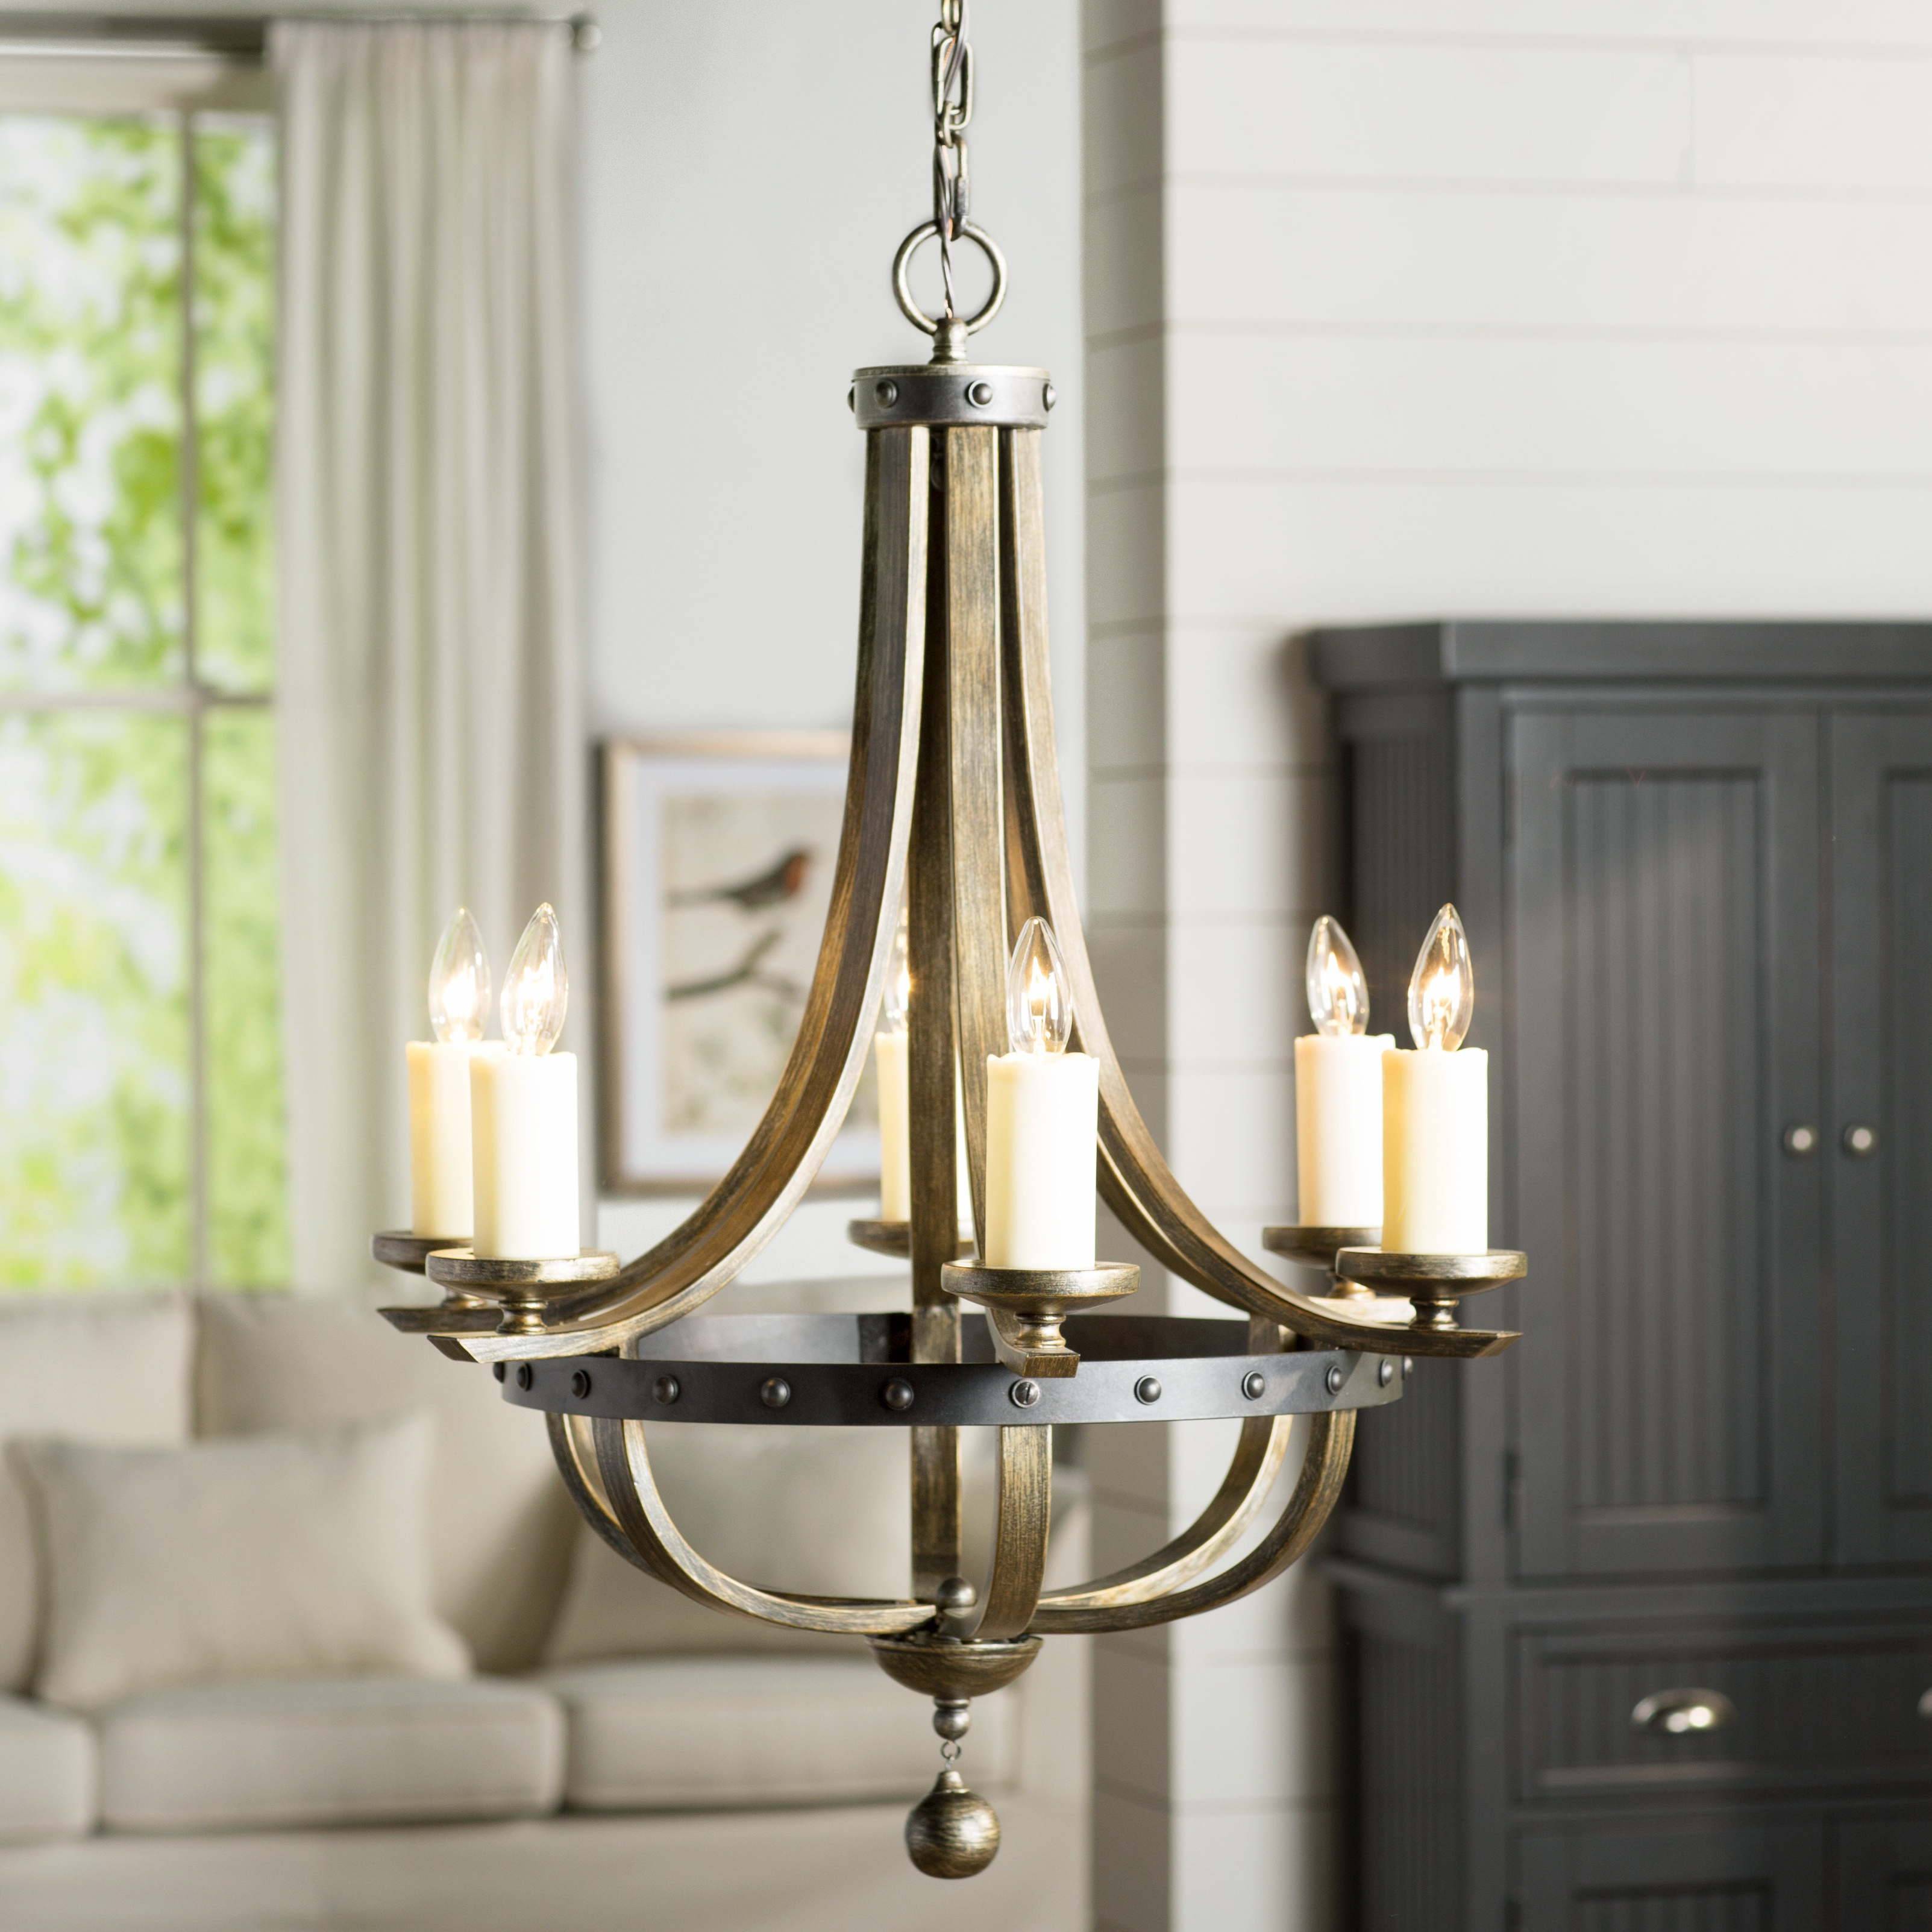 Phifer 6 Light Empire Chandeliers Throughout Most Current Betty Jo 6 Light Empire Chandelier (View 16 of 20)